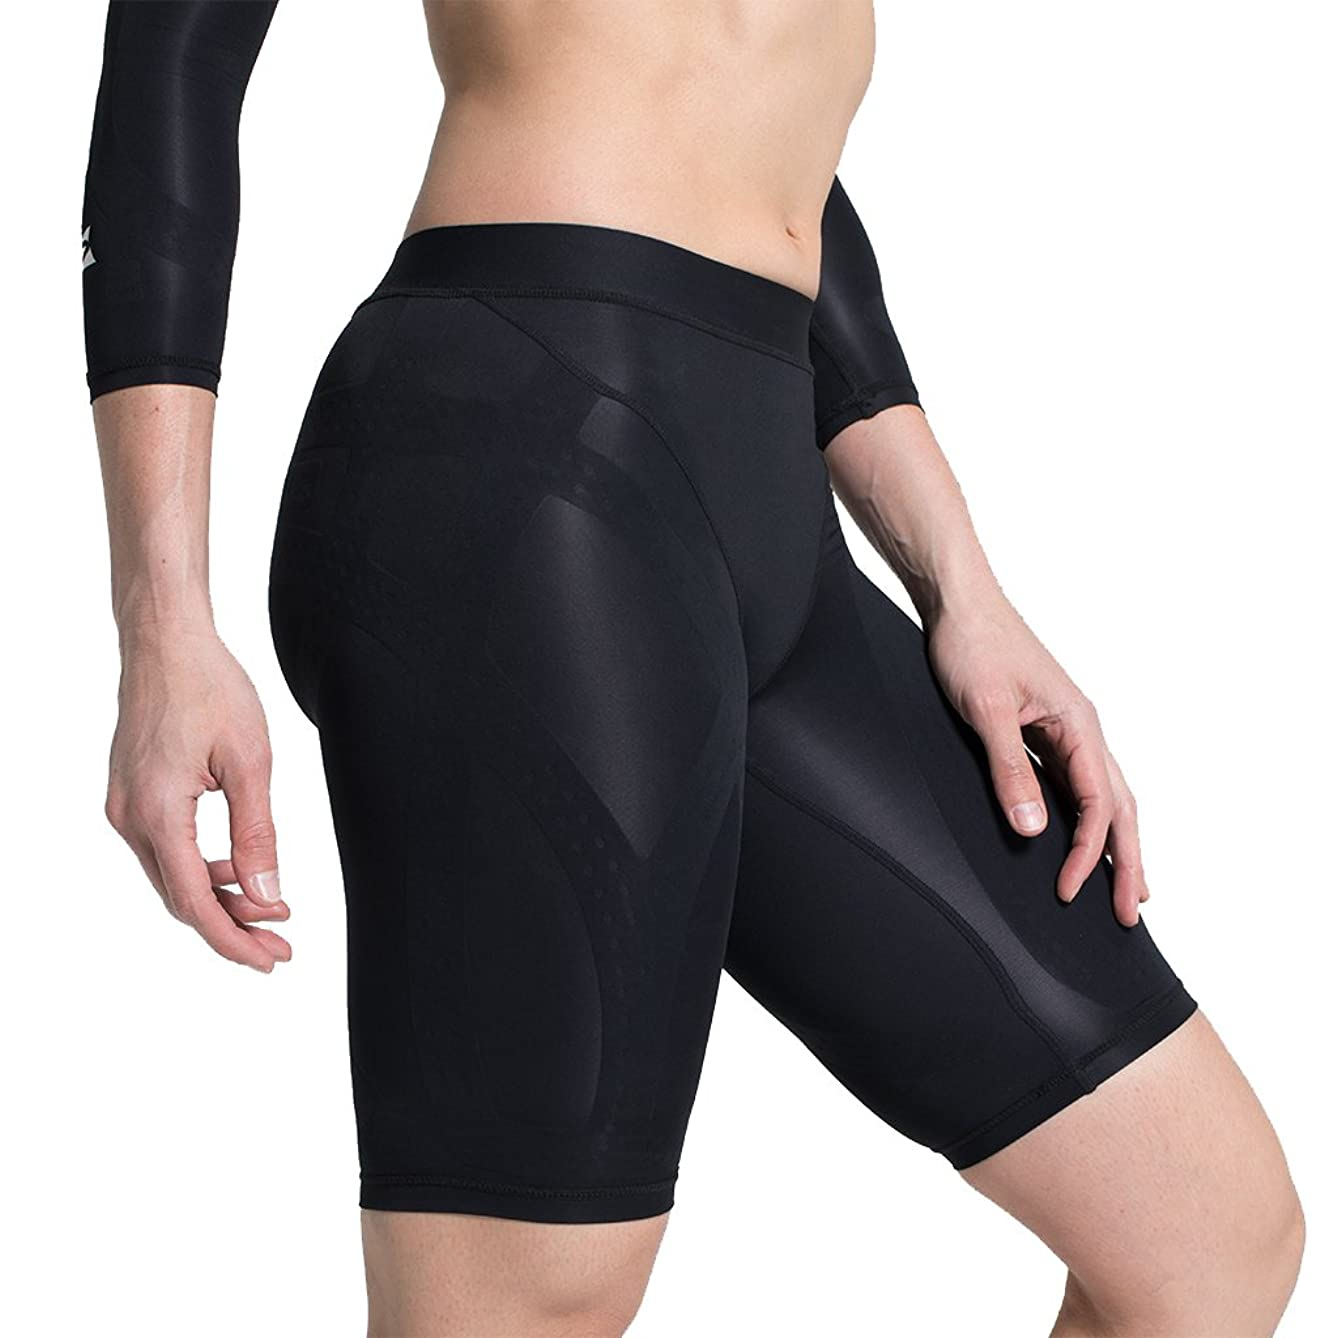 Enerskin E75 Women's FDA Approved Graduated Medical Grade mmHg Compression Shorts with Kinesiology Muscle Mapping